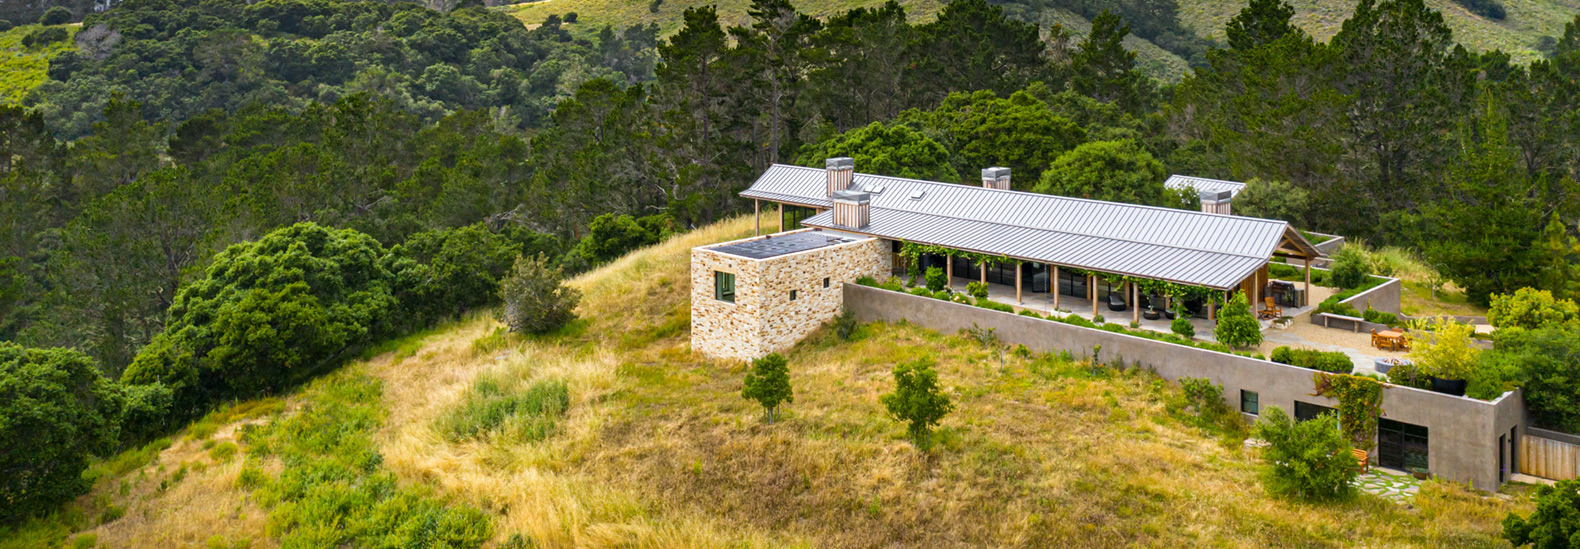 This net-zero home is integrated into the slopes of Carmel Valley